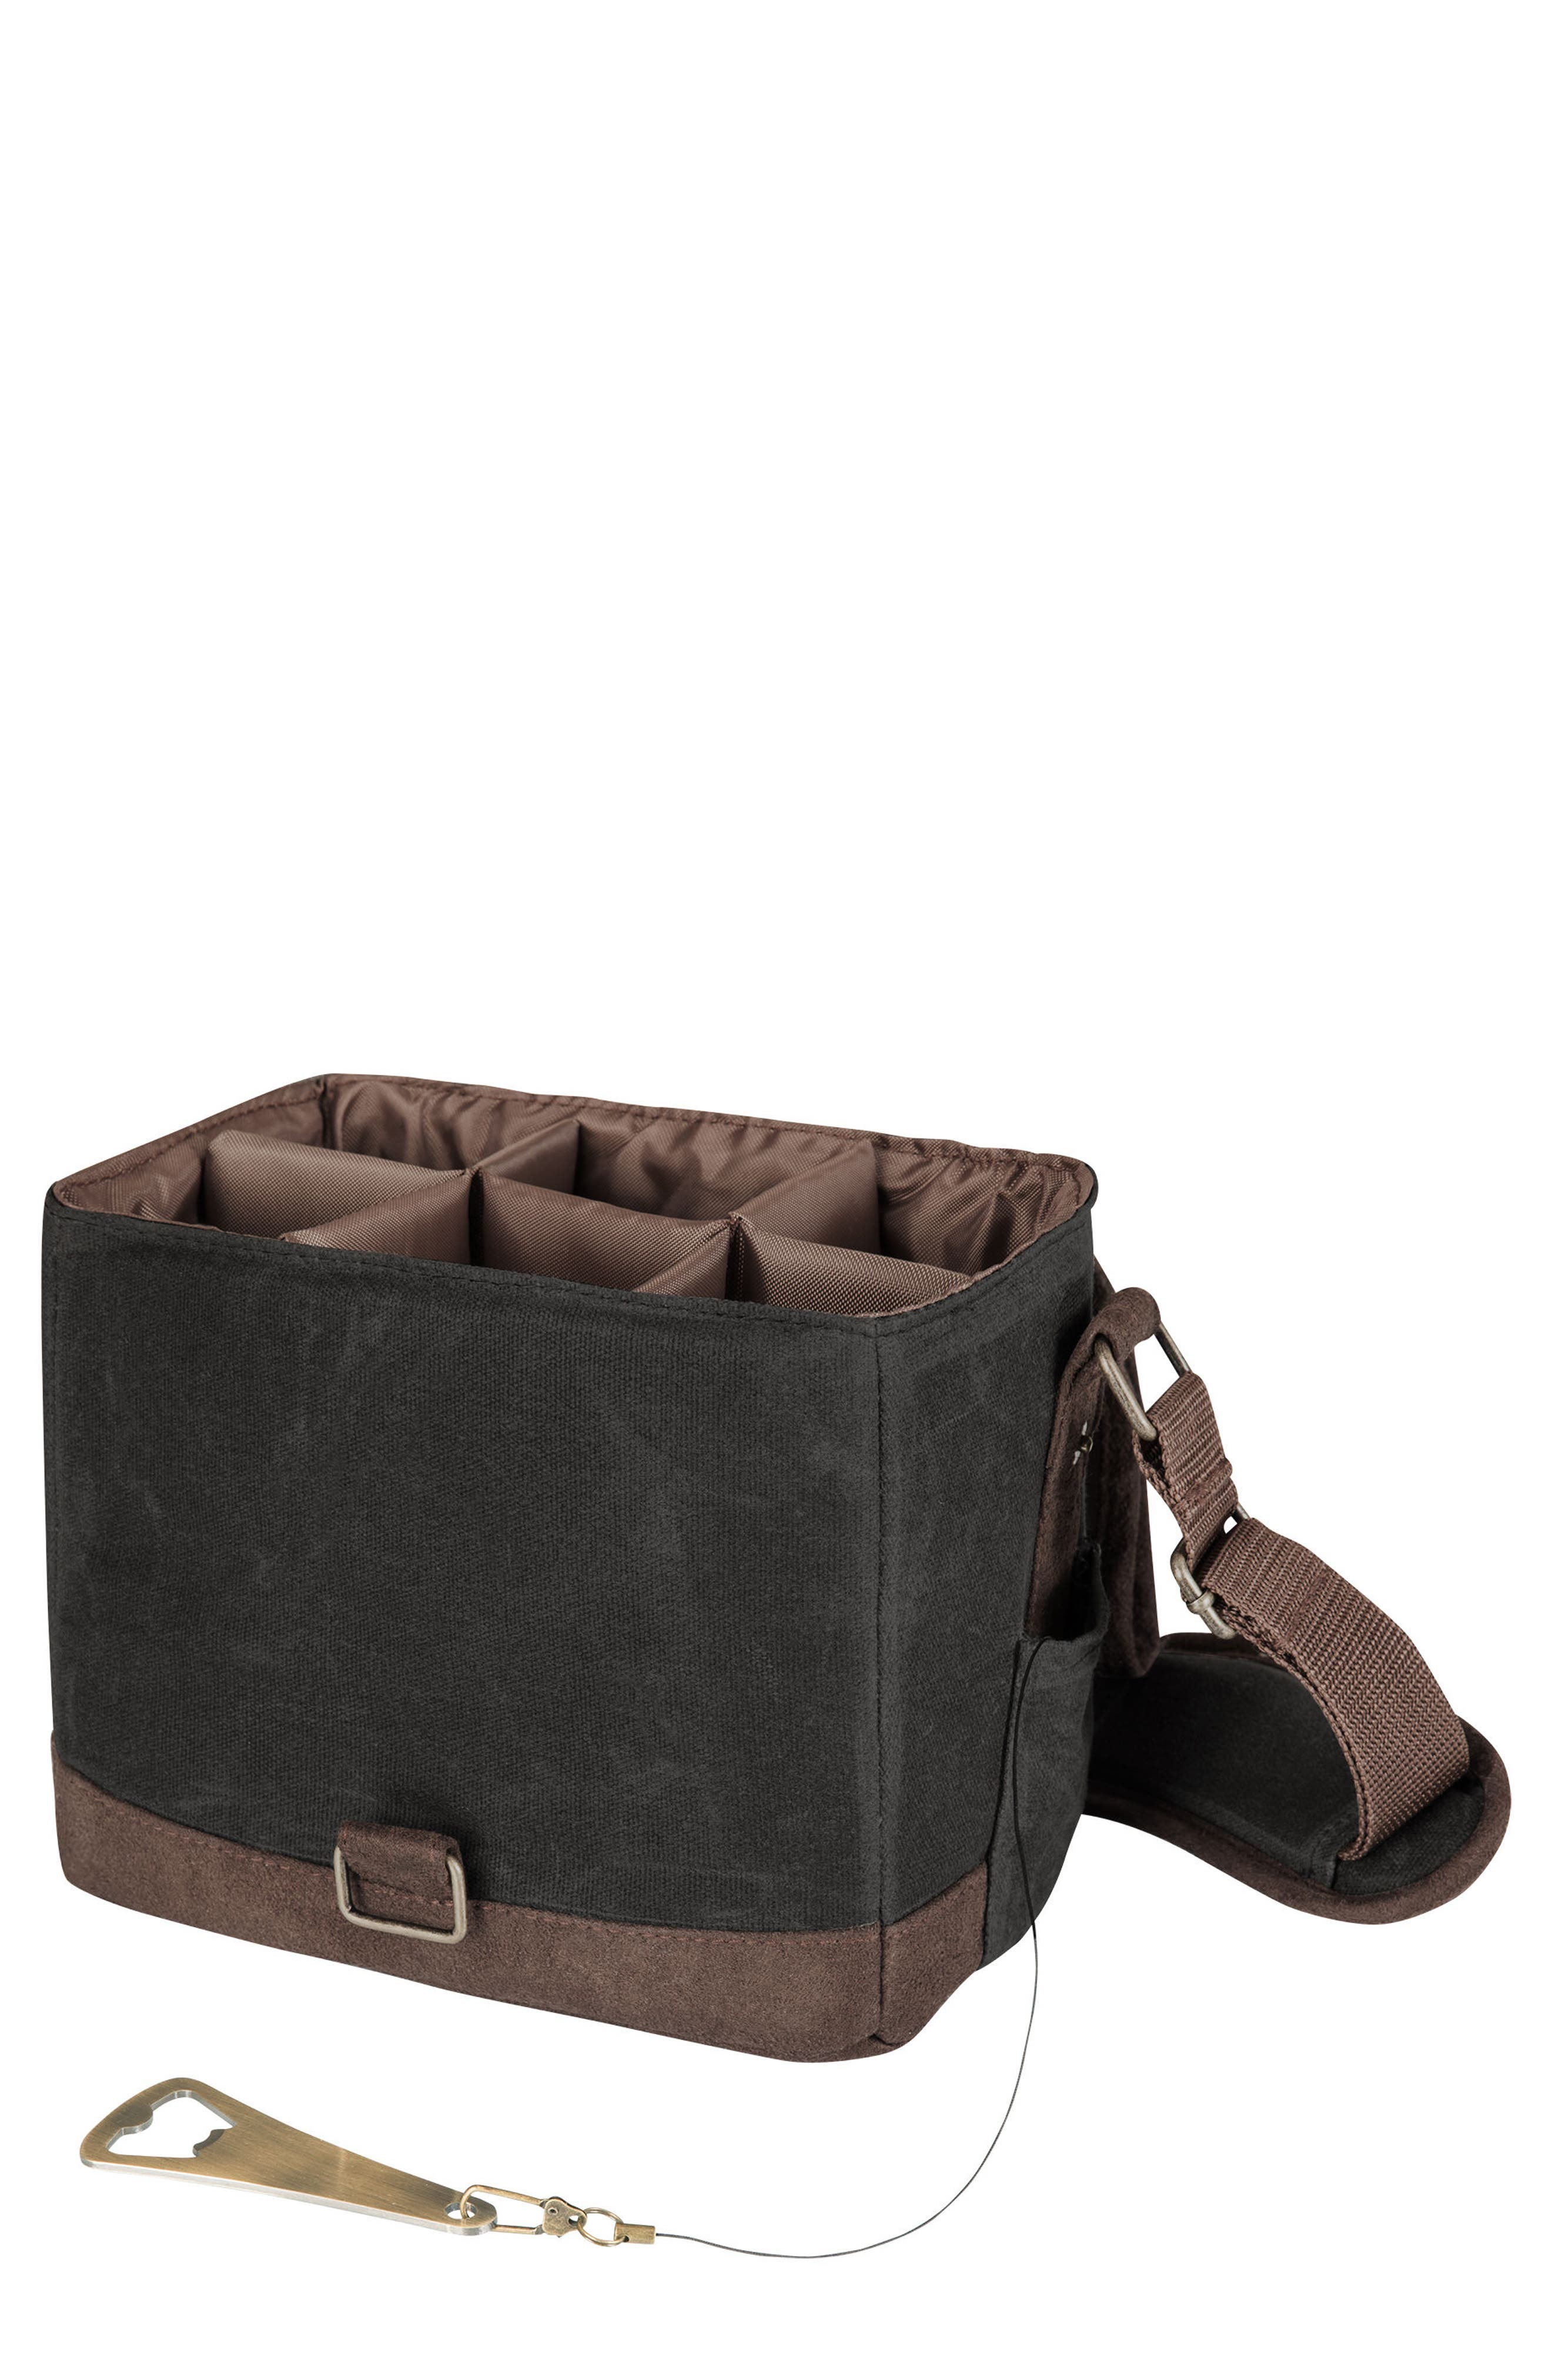 Beer Caddy Cooler Tote,                         Main,                         color, 001